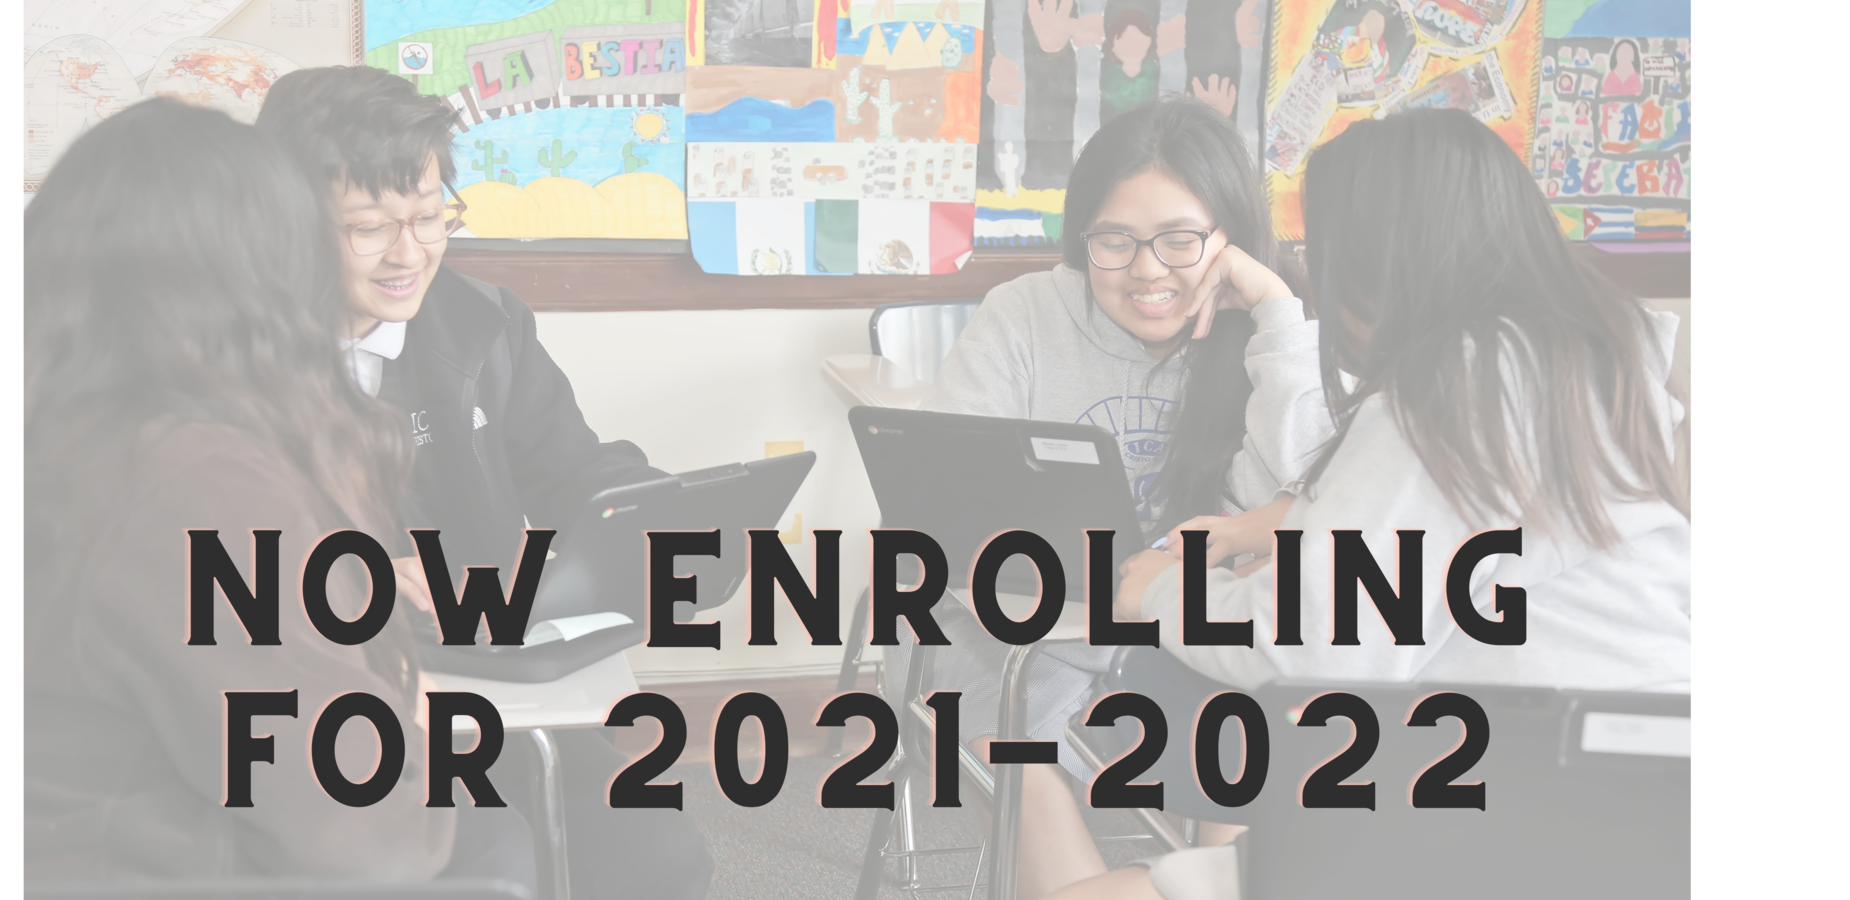 4 students with now enrolling for 2021-2022 message